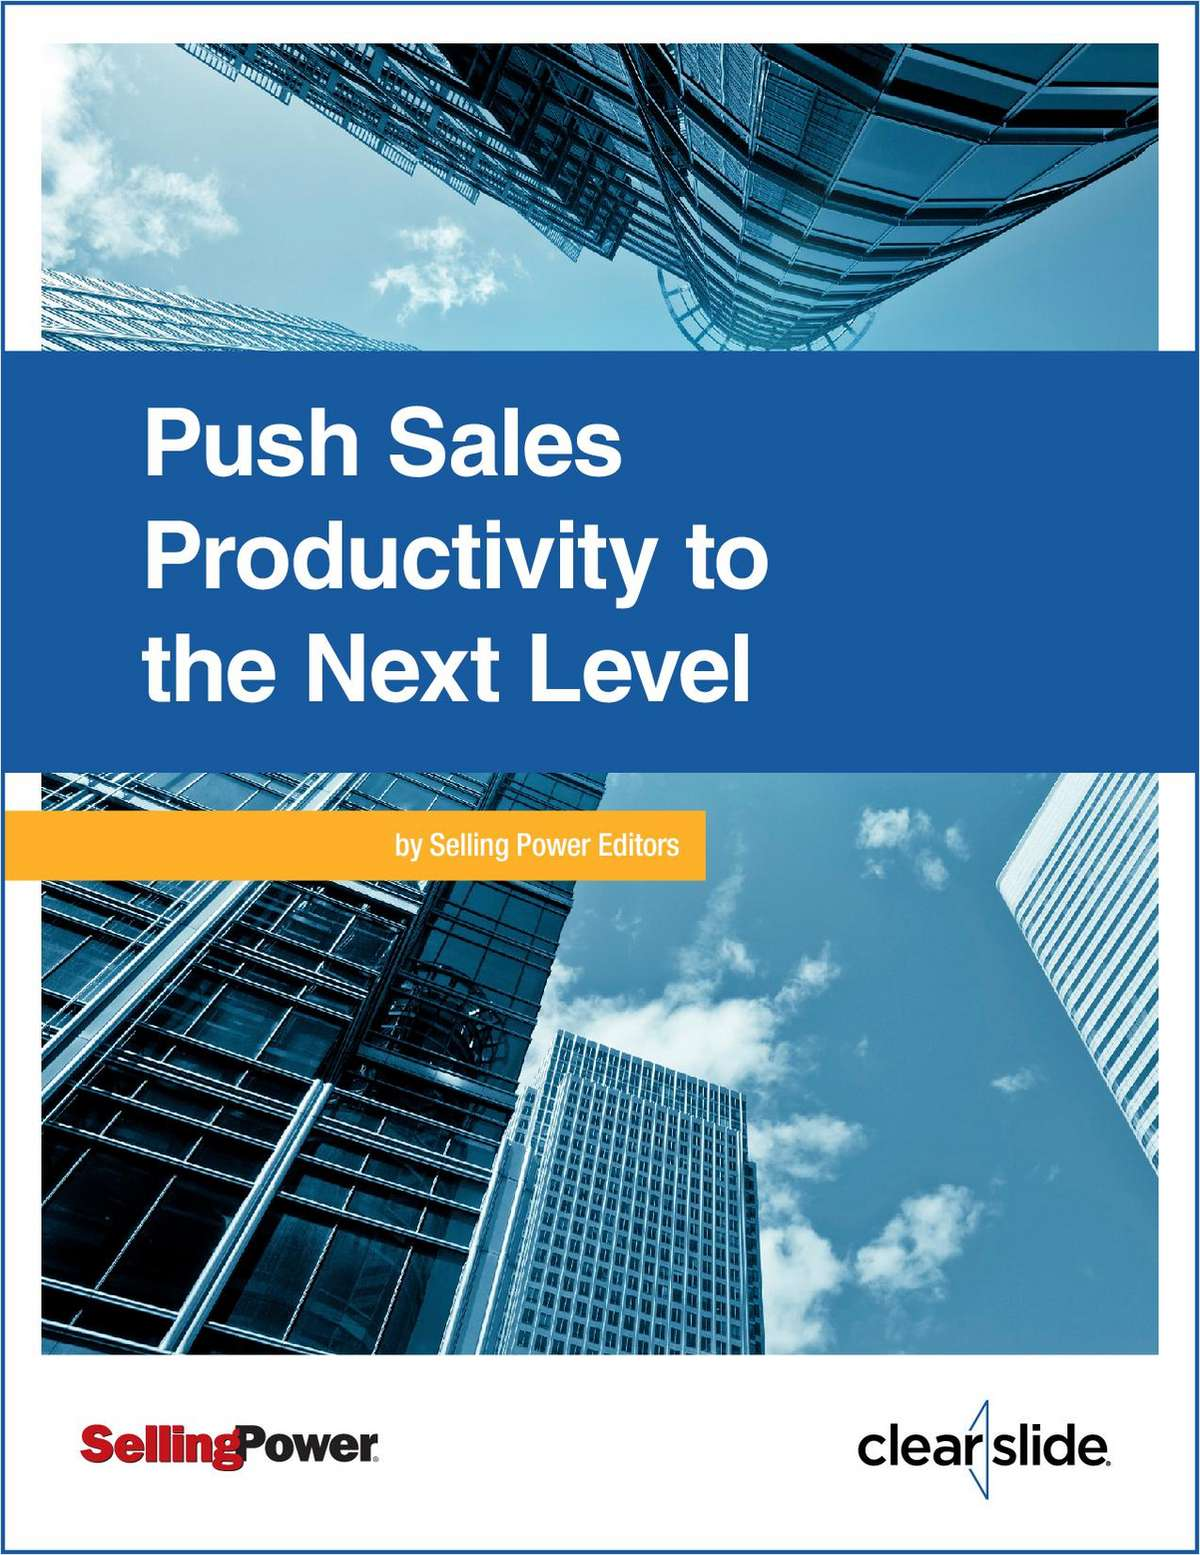 Push Sales Productivity to the Next Level